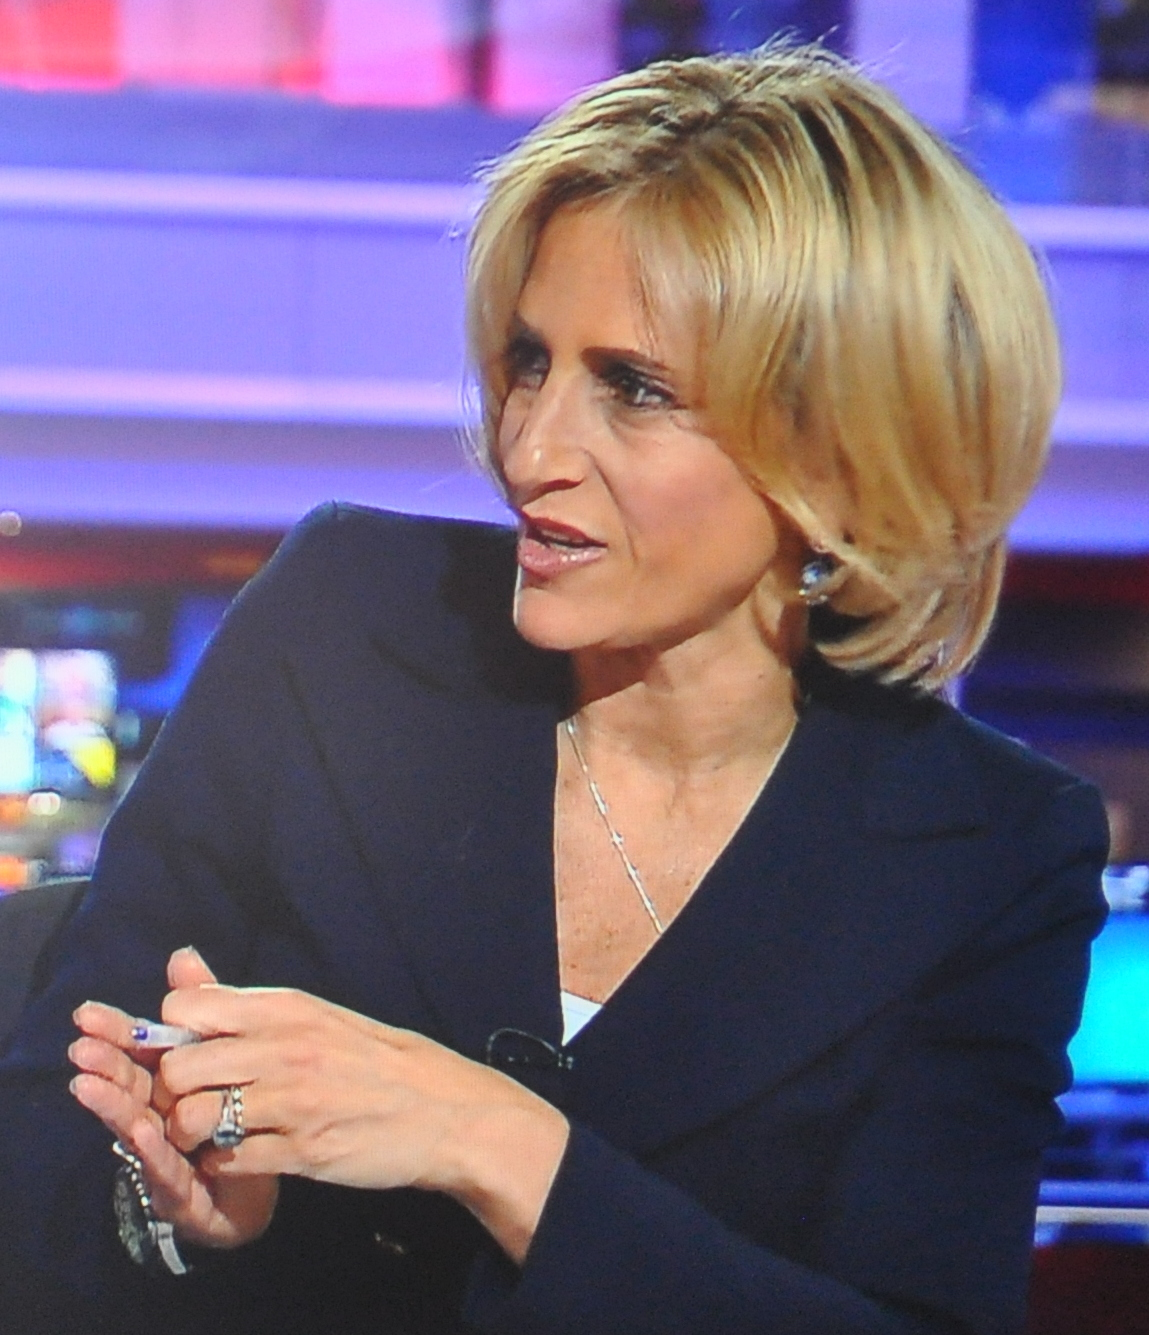 EMILY MAITLIS SAYS SHE ASKED FOR THE NIGHT OFF